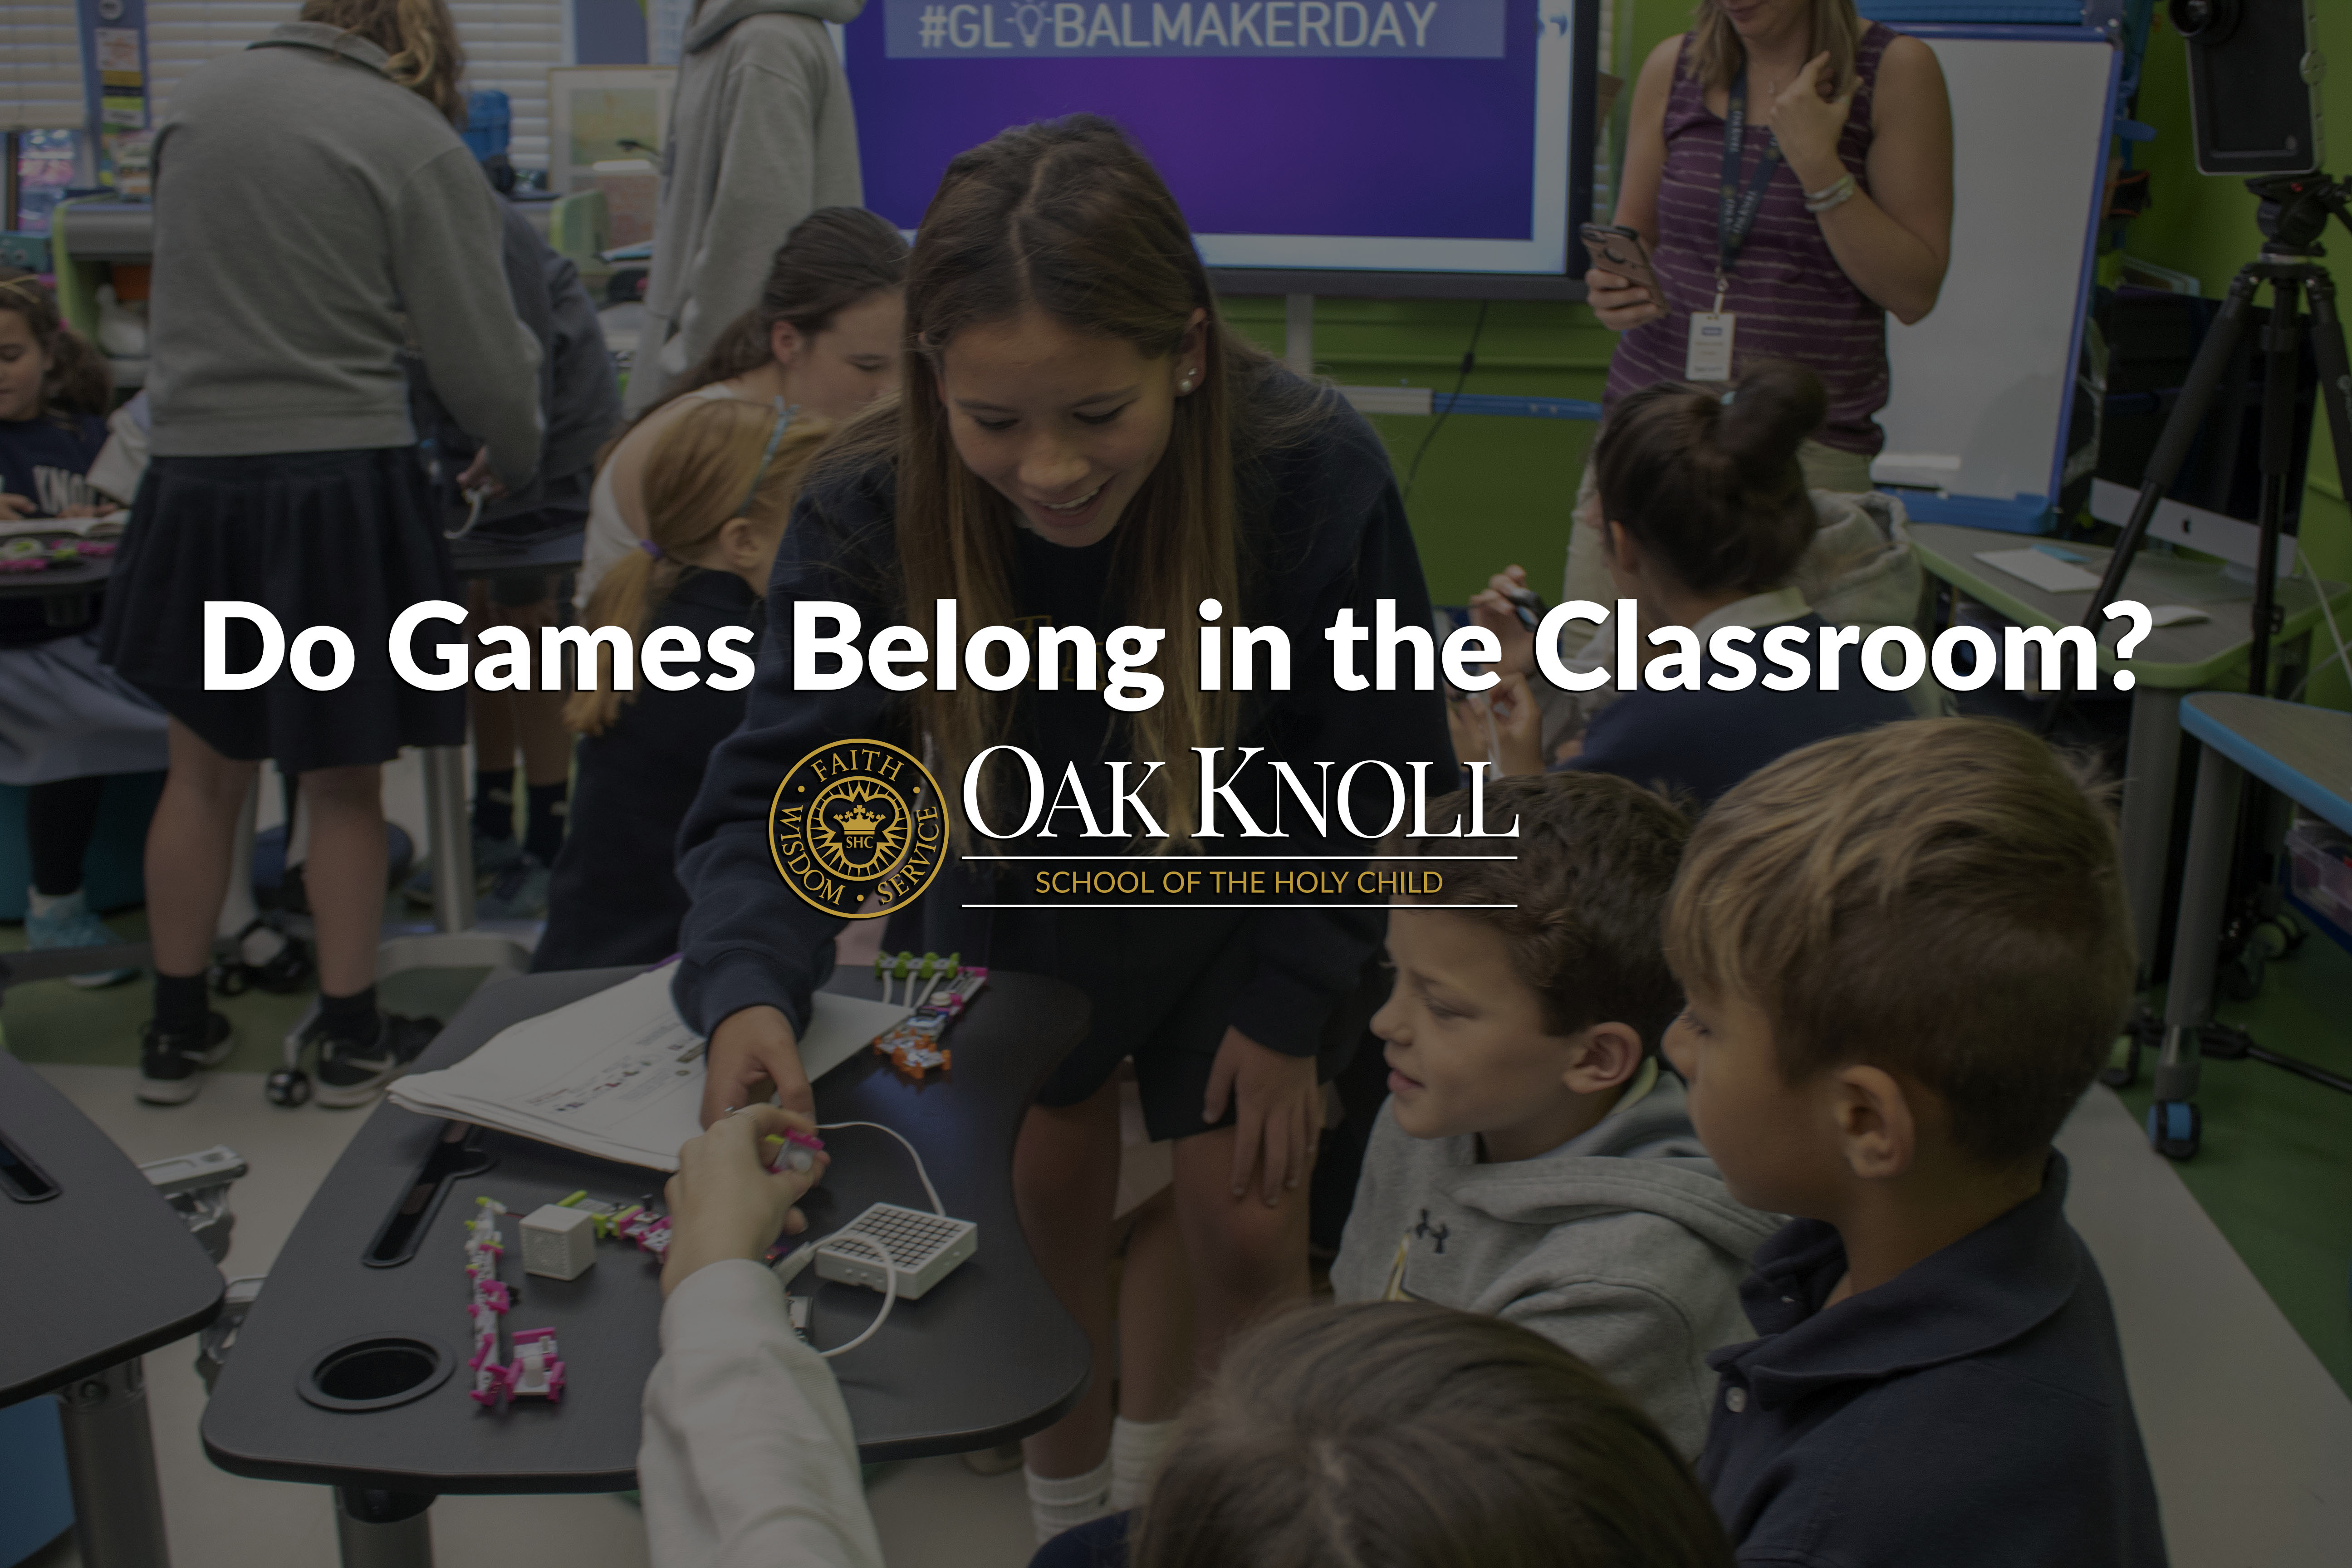 Do Games Belong in the Classroom